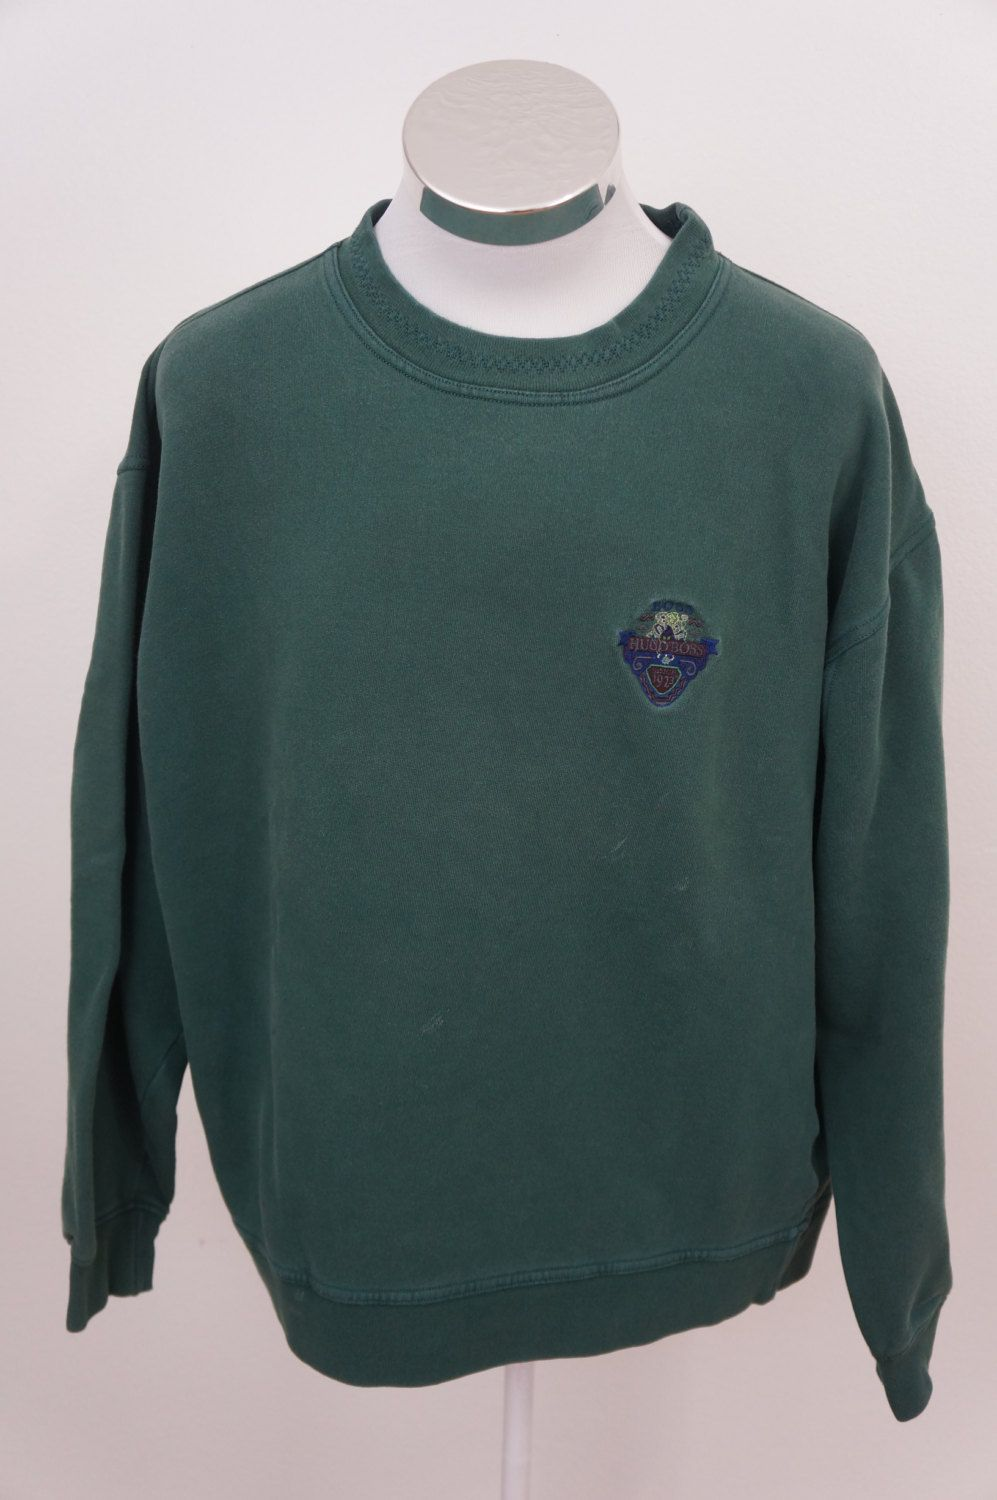 Vintage HUGO BOSS Pullover Crewneck Green Sweater Sz XXL 2XL by ...